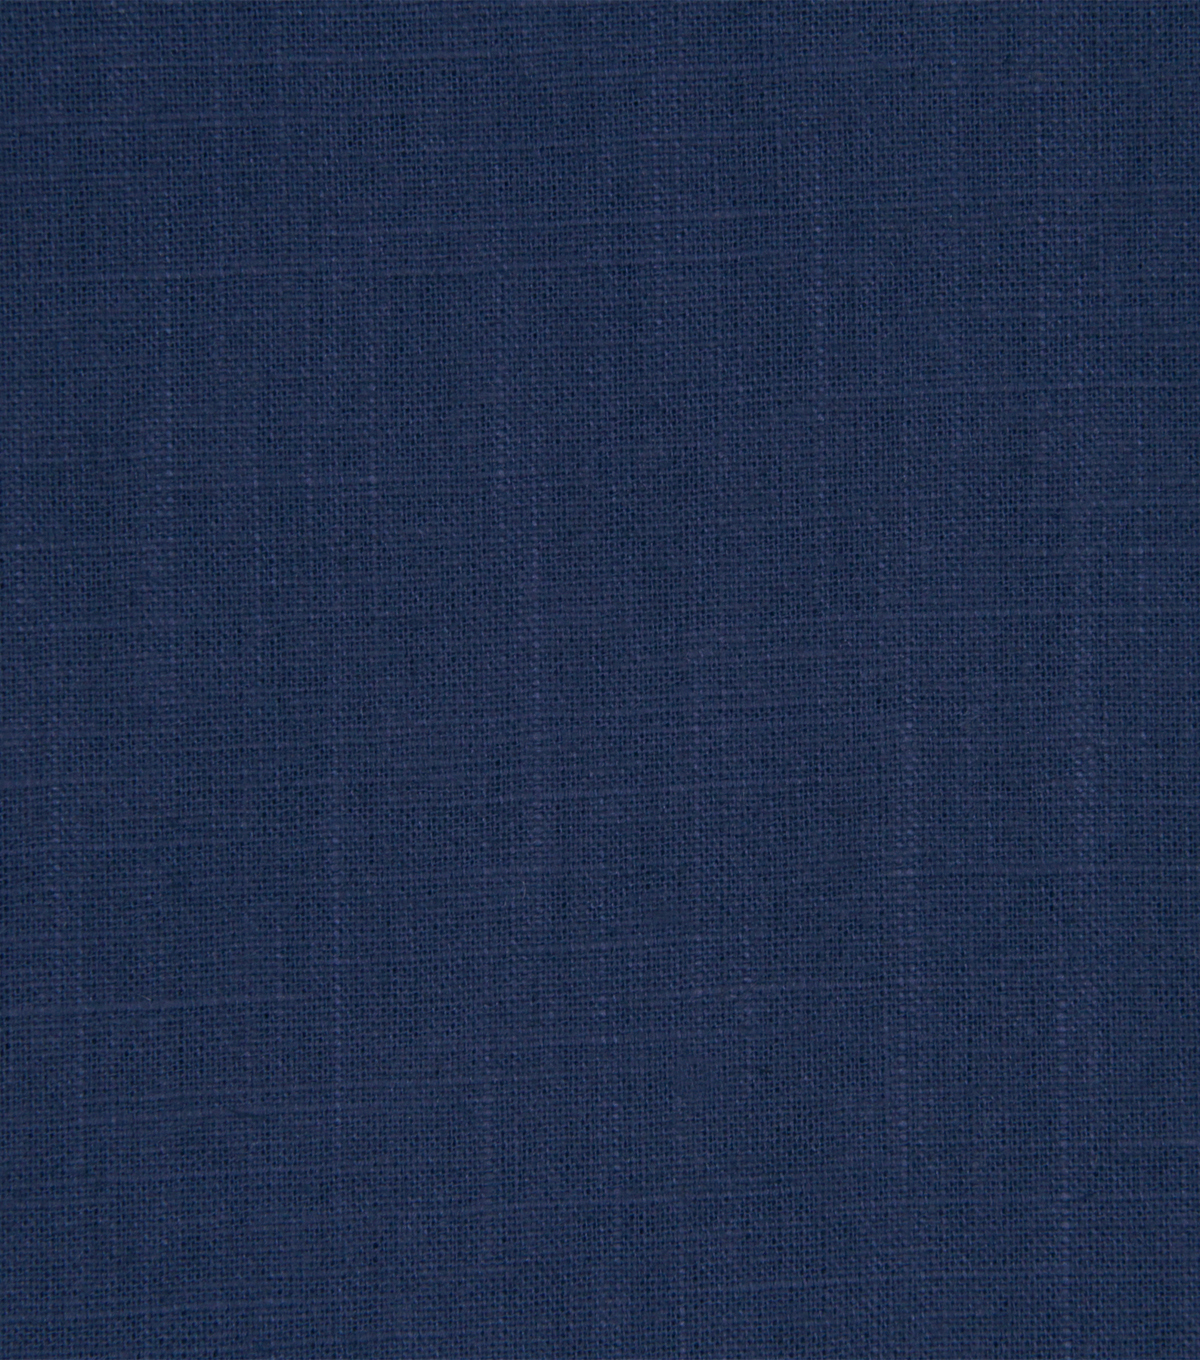 "Home Decor 8""x8"" Fabric Swatch-Robert Allen Linen Slub Ultramarine"